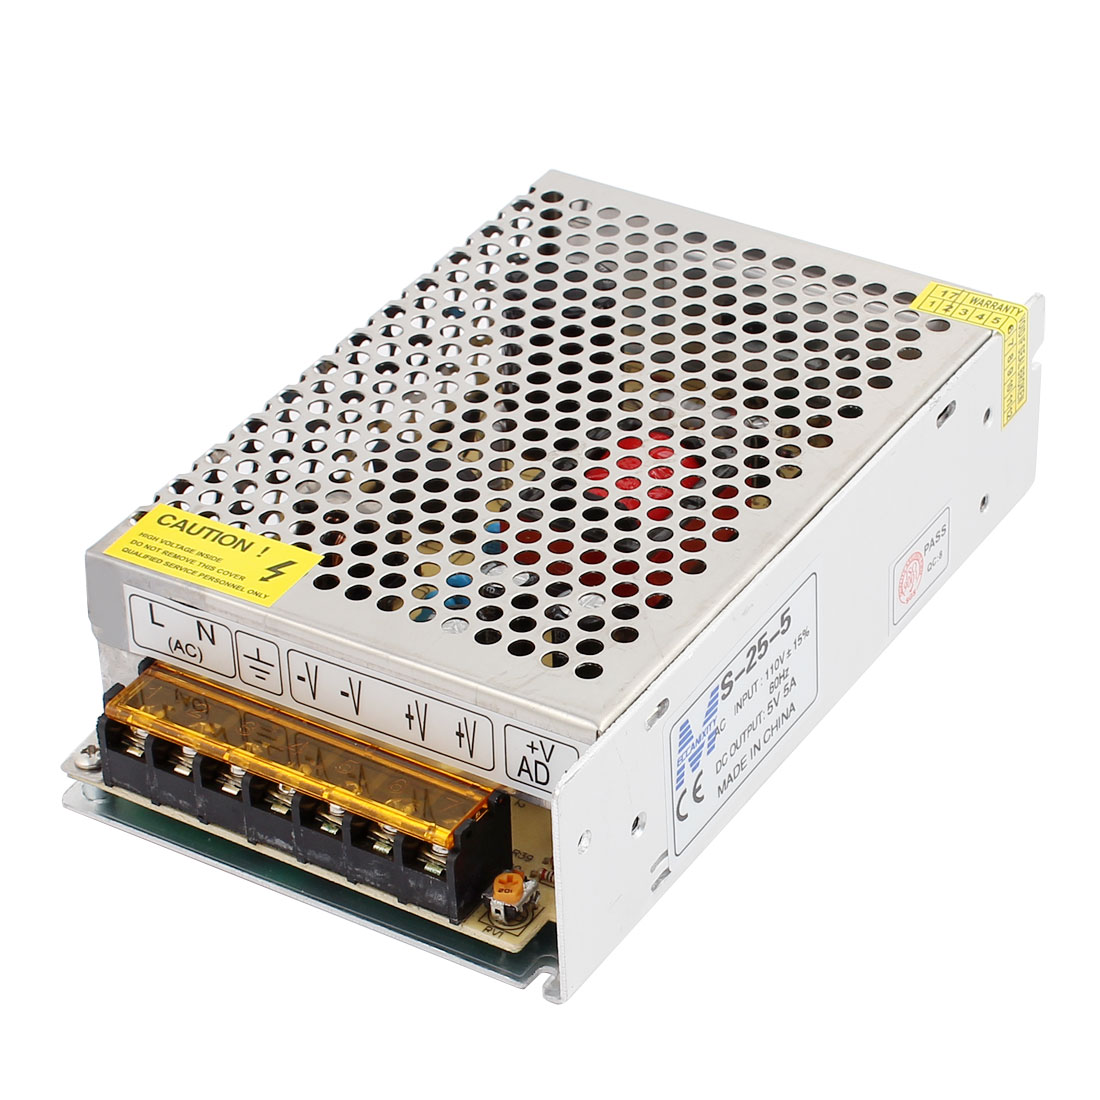 AC 110V 220V to DC 5V 5A 25W Switching Power Supply Driver S-25-5 for LED Strip